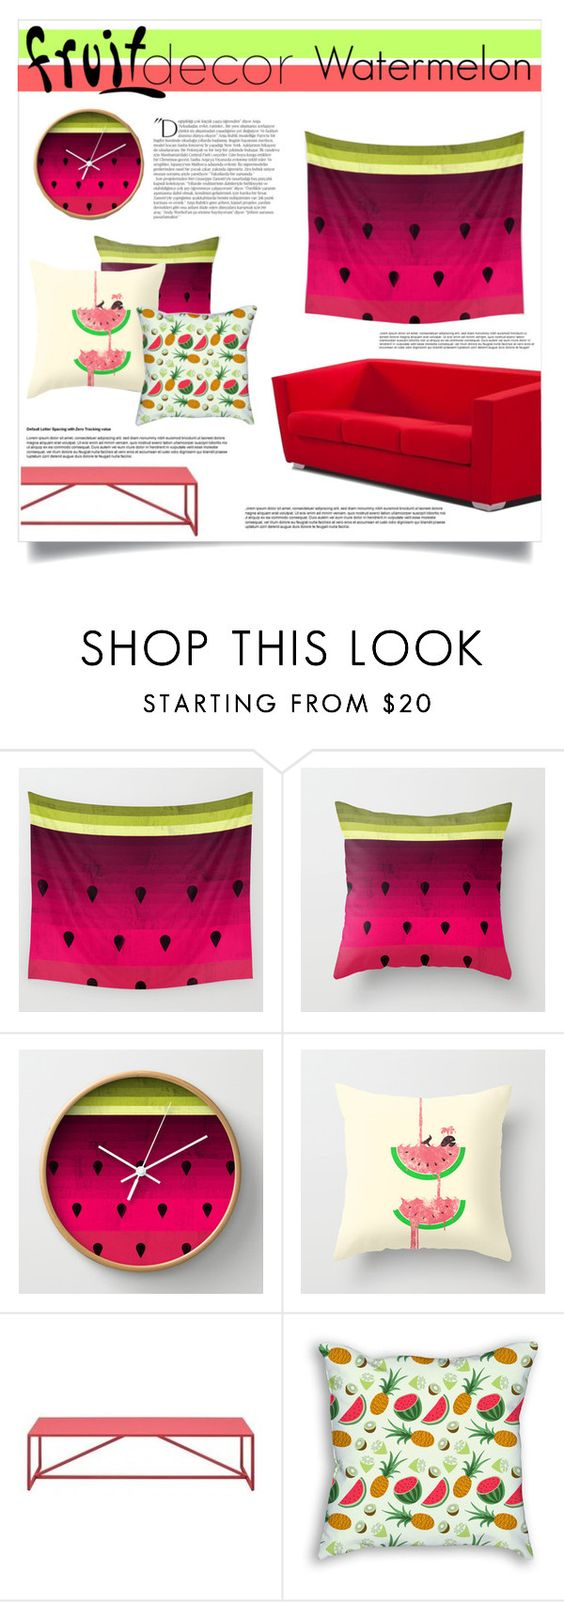 """""""Fruit Decor"""" by spellrox ❤ liked on Polyvore featuring interior, interiors, interior design, home, home decor, interior decorating, Balmain, Blu Dot and fruitdecor"""